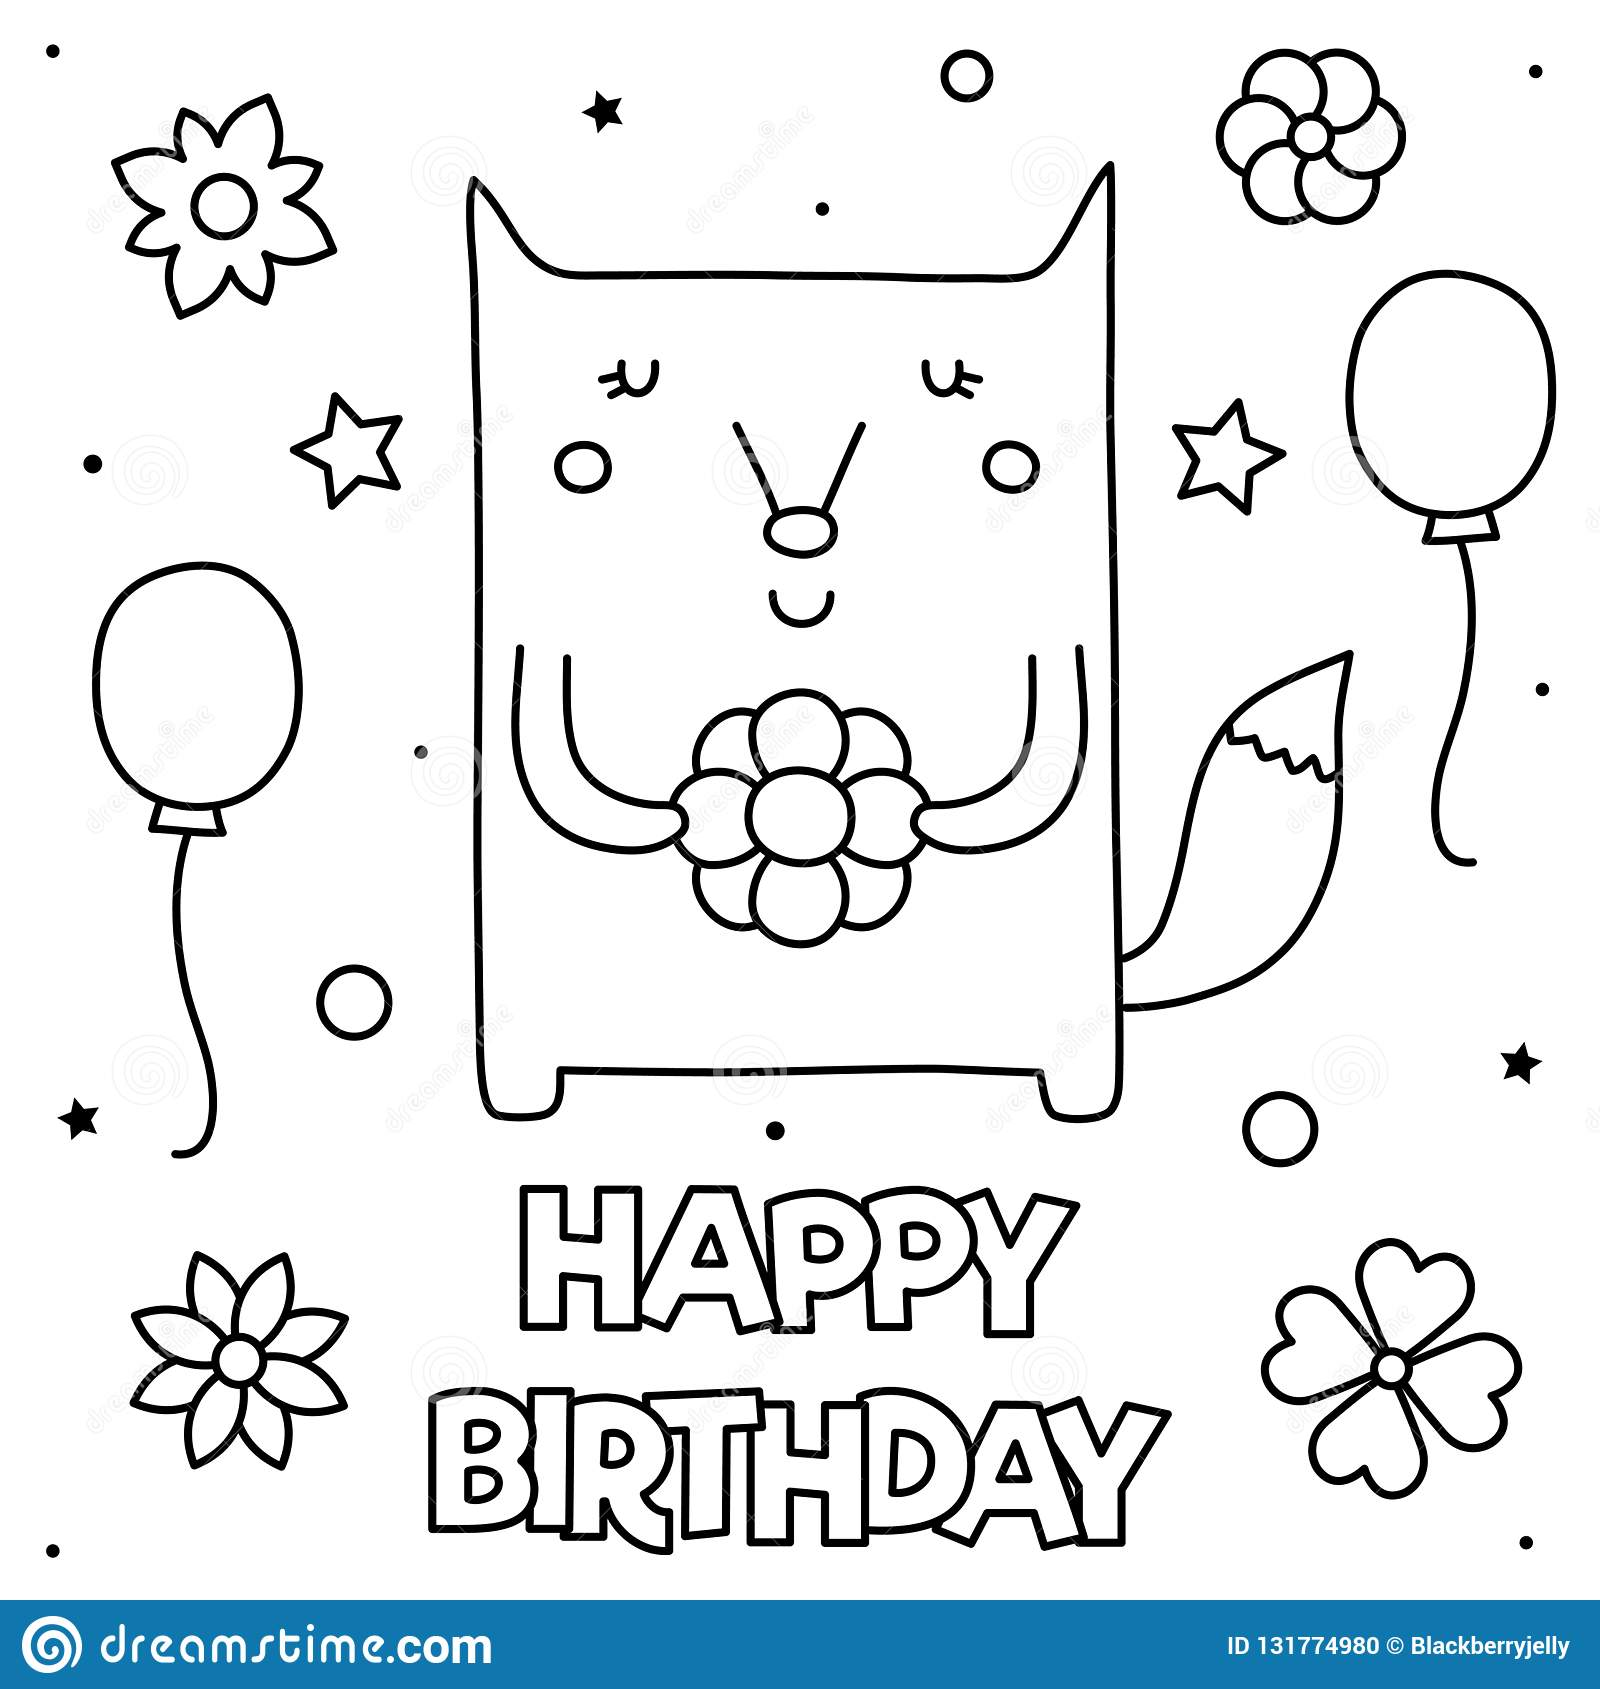 Happy Birthday Coloring Page Vector Illustration Of A Fox Stock Vector Illustration Of Decoration Style 131774980